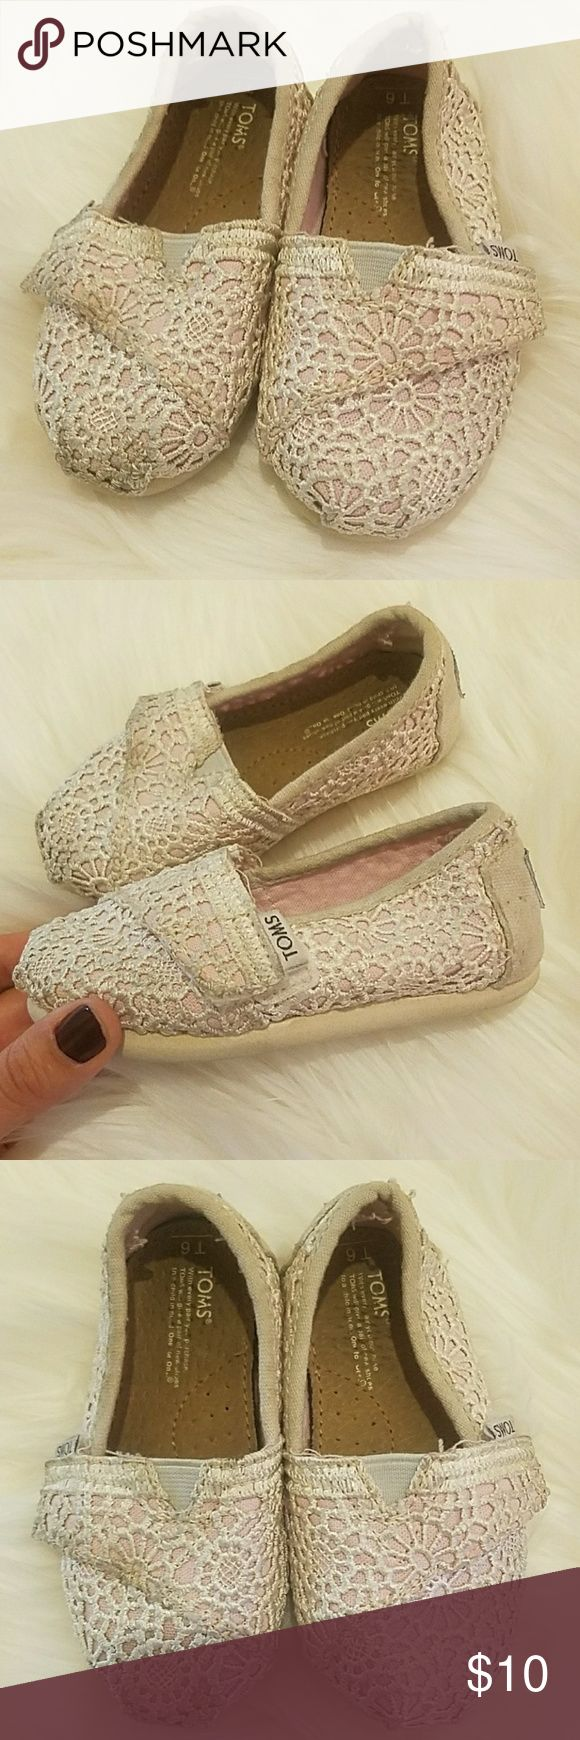 Pink/white floral Toms Pink and white/off white Floral Toms. Size T6 (toddler) good, used condition. Could use a light cleaning on outside because of the light colors. Insides are great condition. Toms Shoes Sneakers